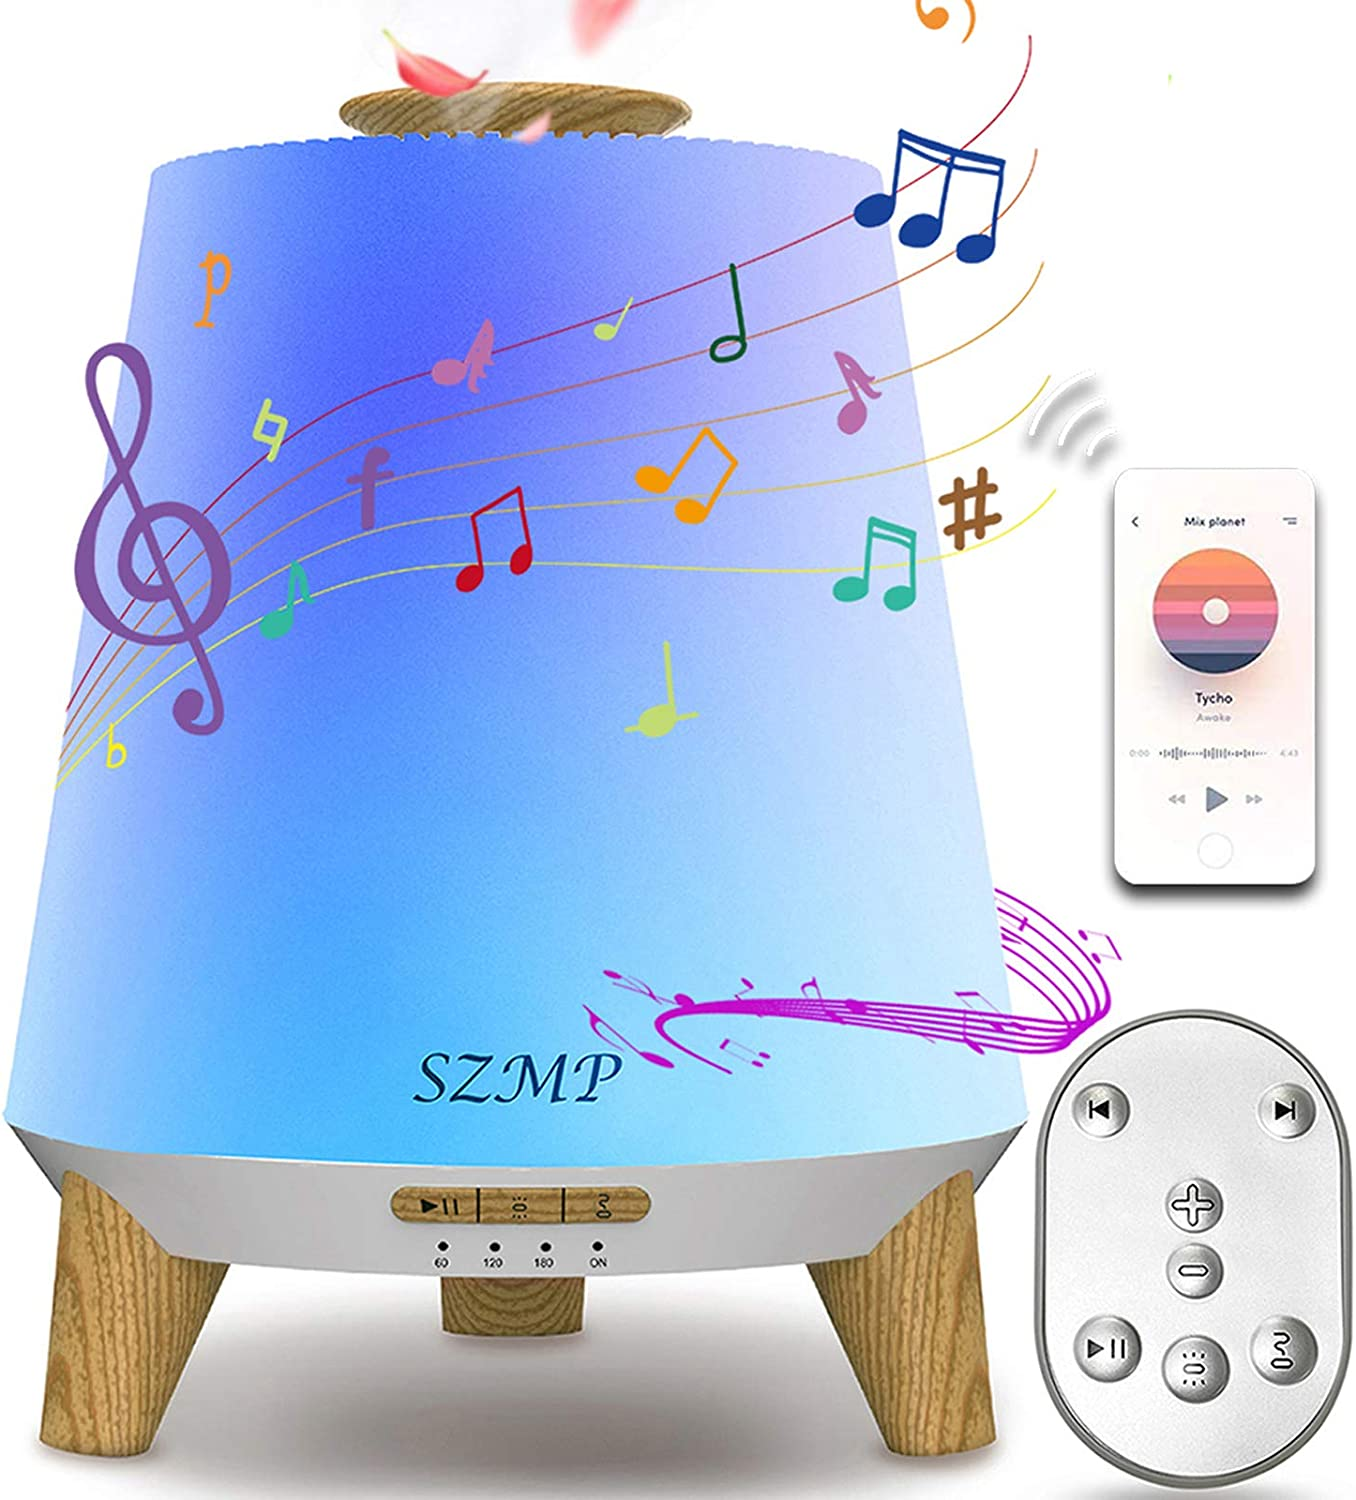 SZMP Essential Oil Diffuser Diffusers for with trust R Oils Purchase